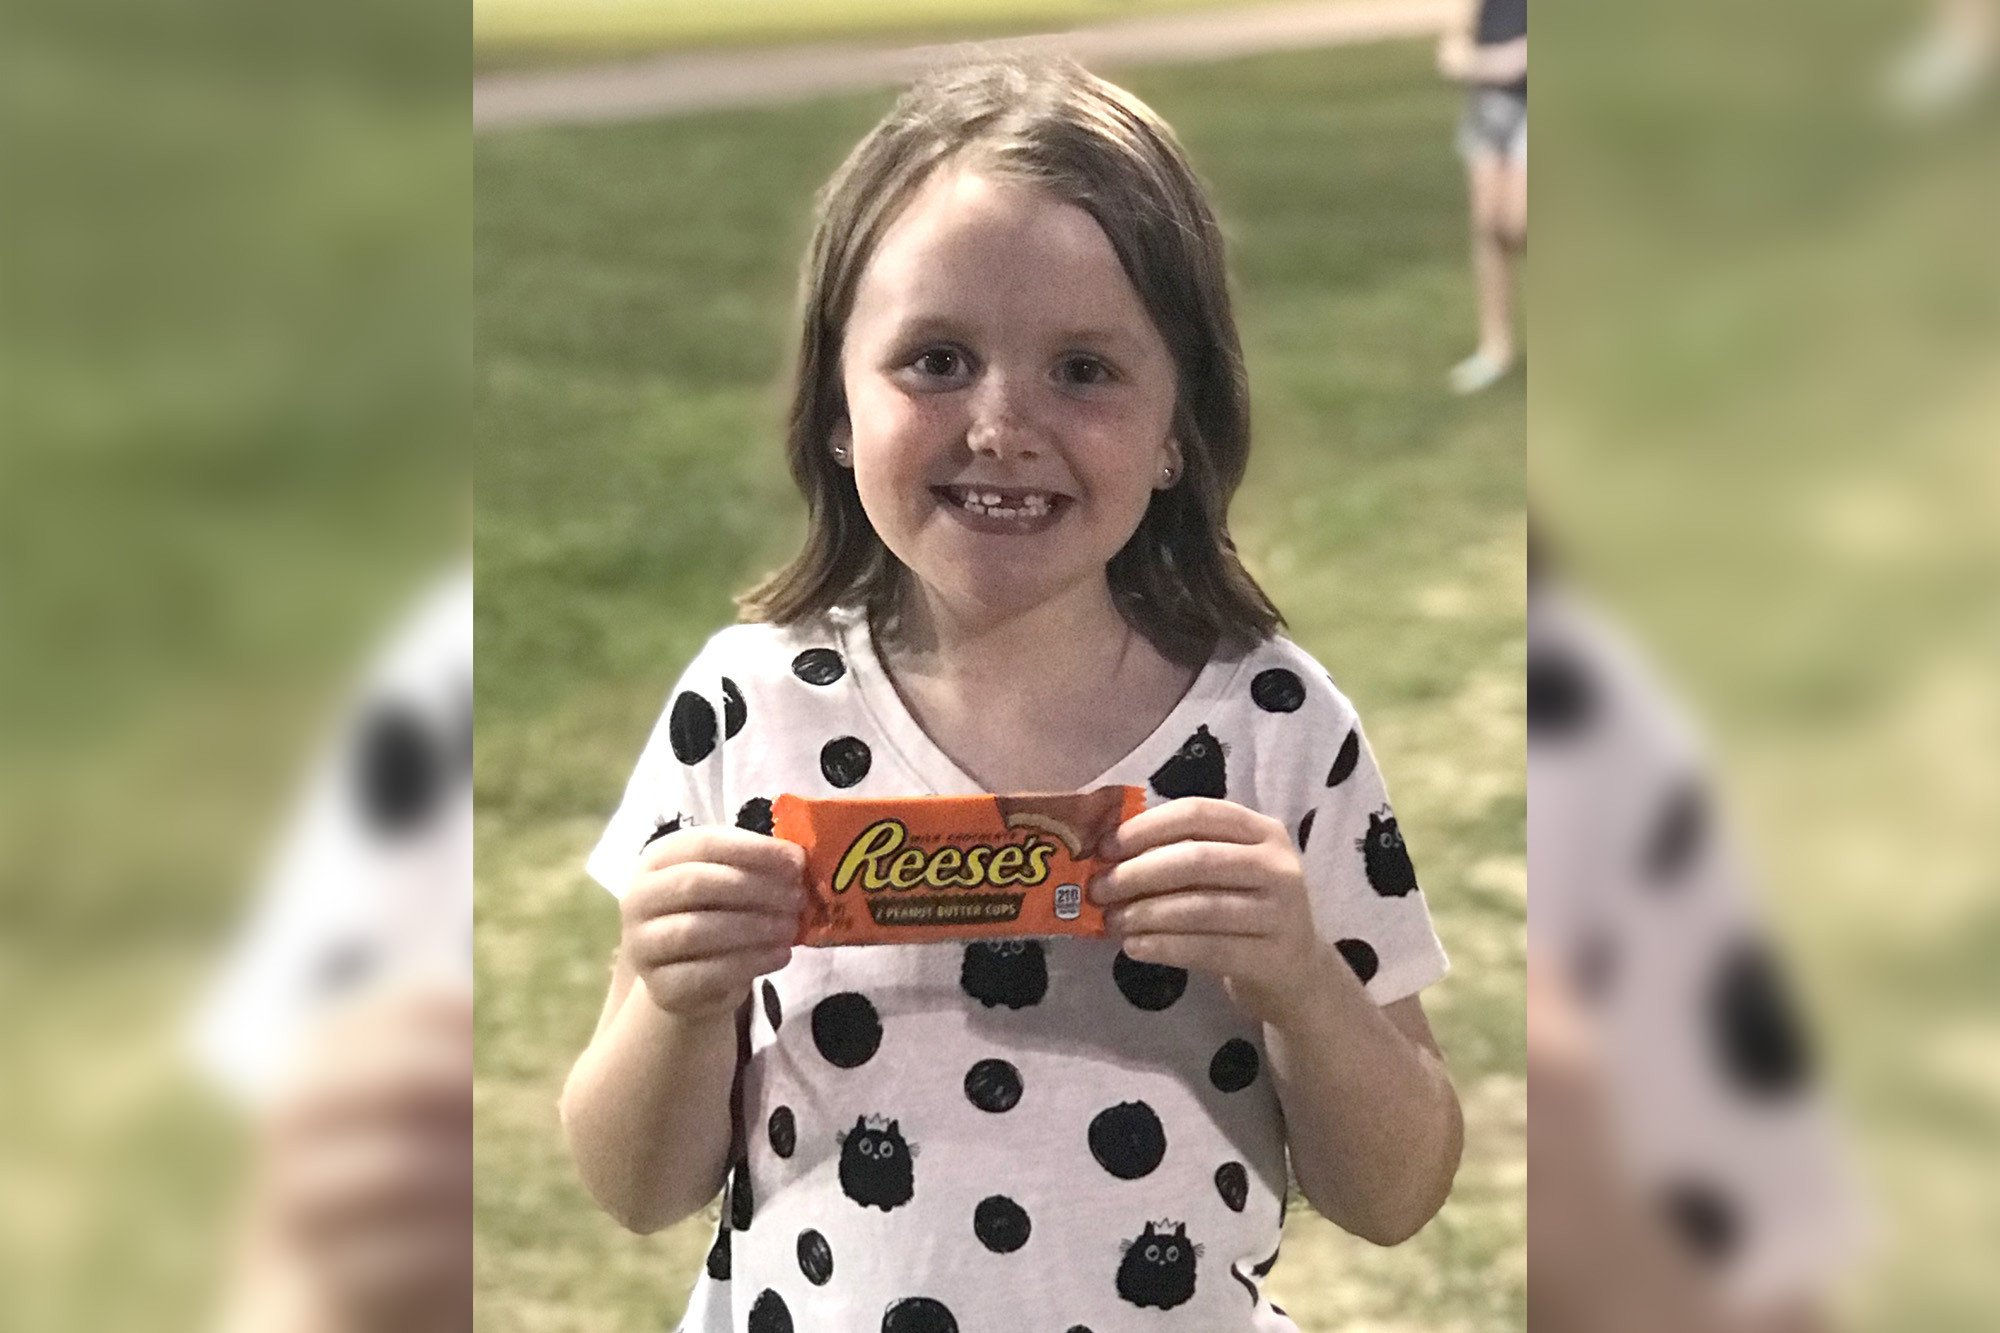 Mom names daughter after mispronunciation of candy bar